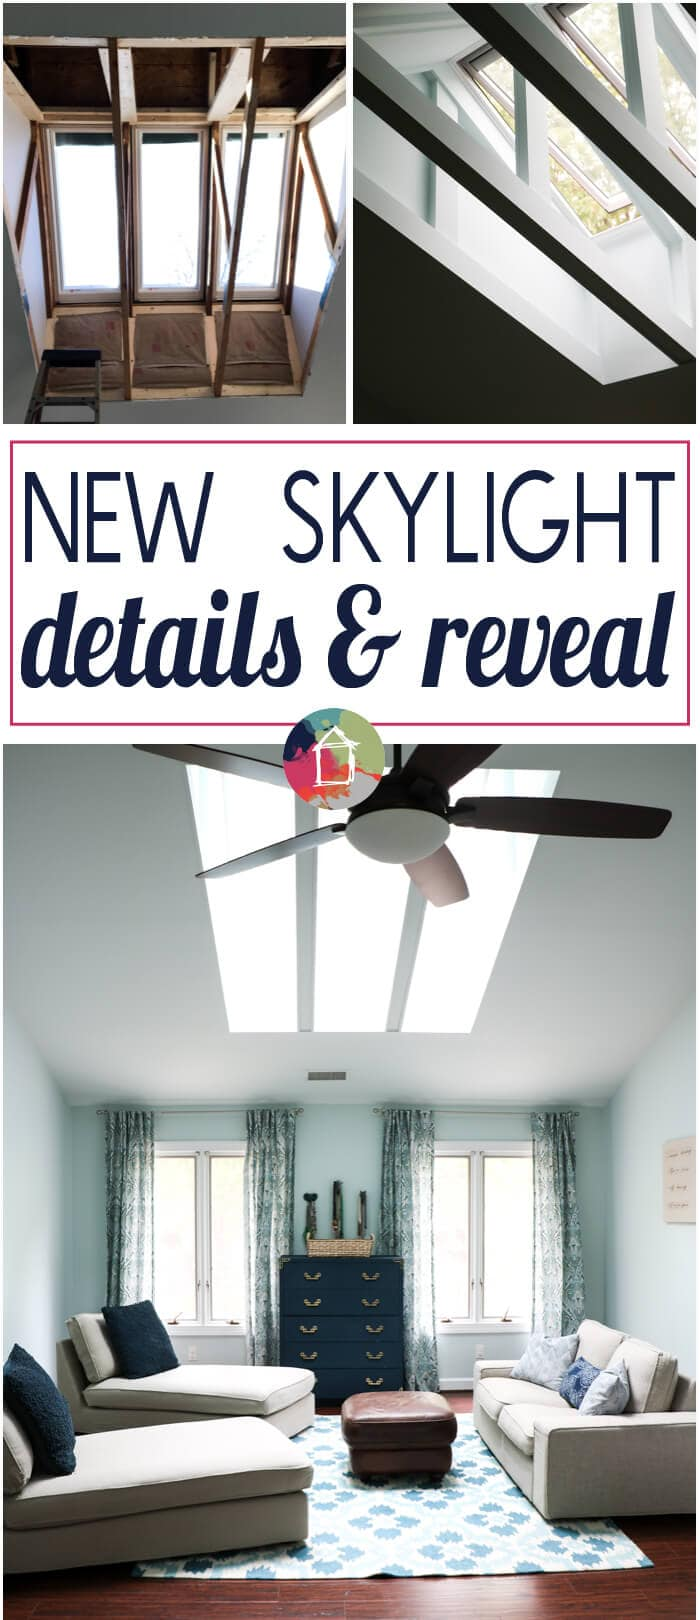 Nothing can brighten a space and create interest on your fifth walls like skylights! Check out this amazing skylight reveal!